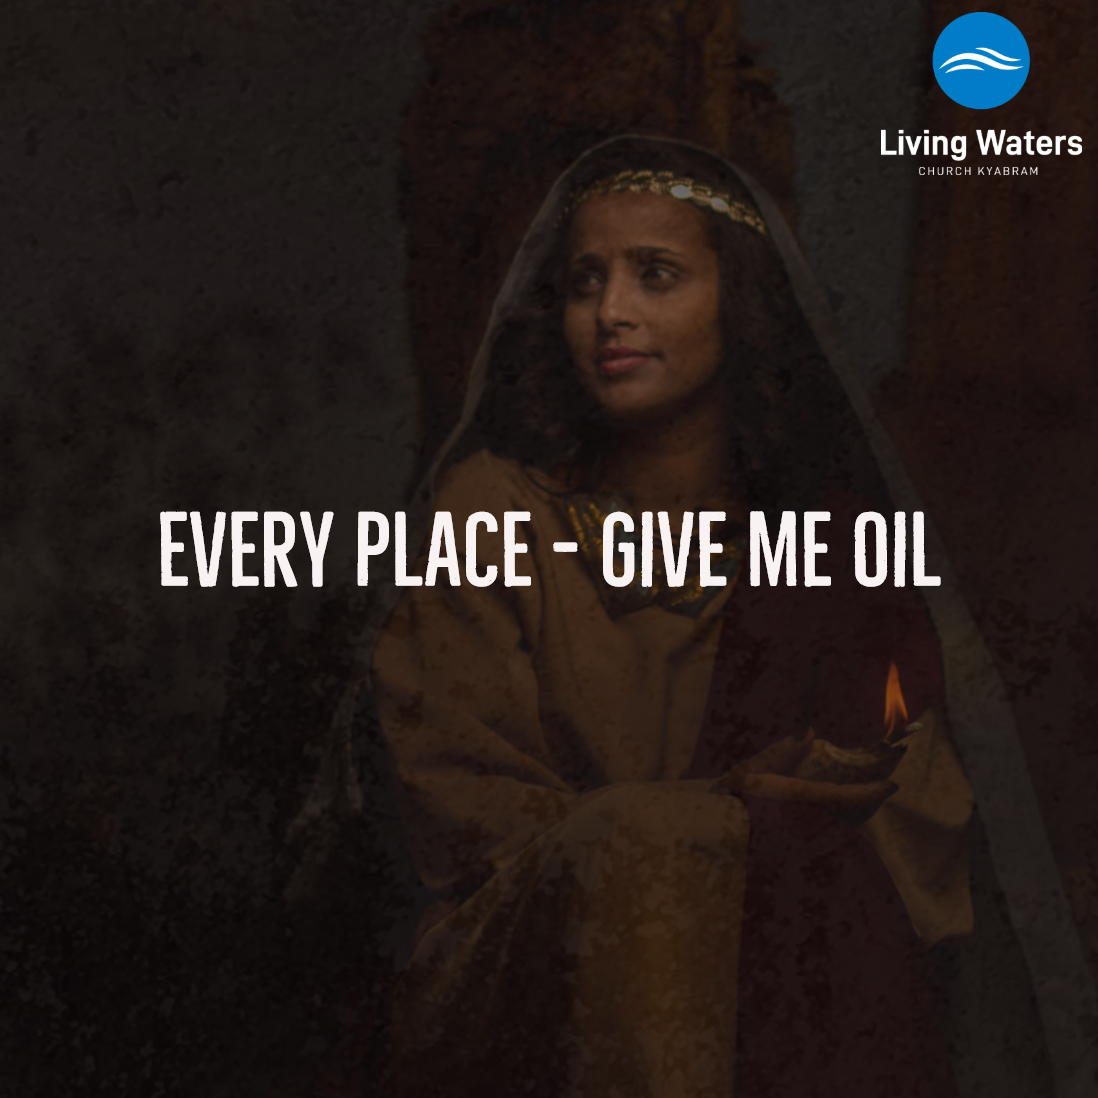 Every Place – Give me oil